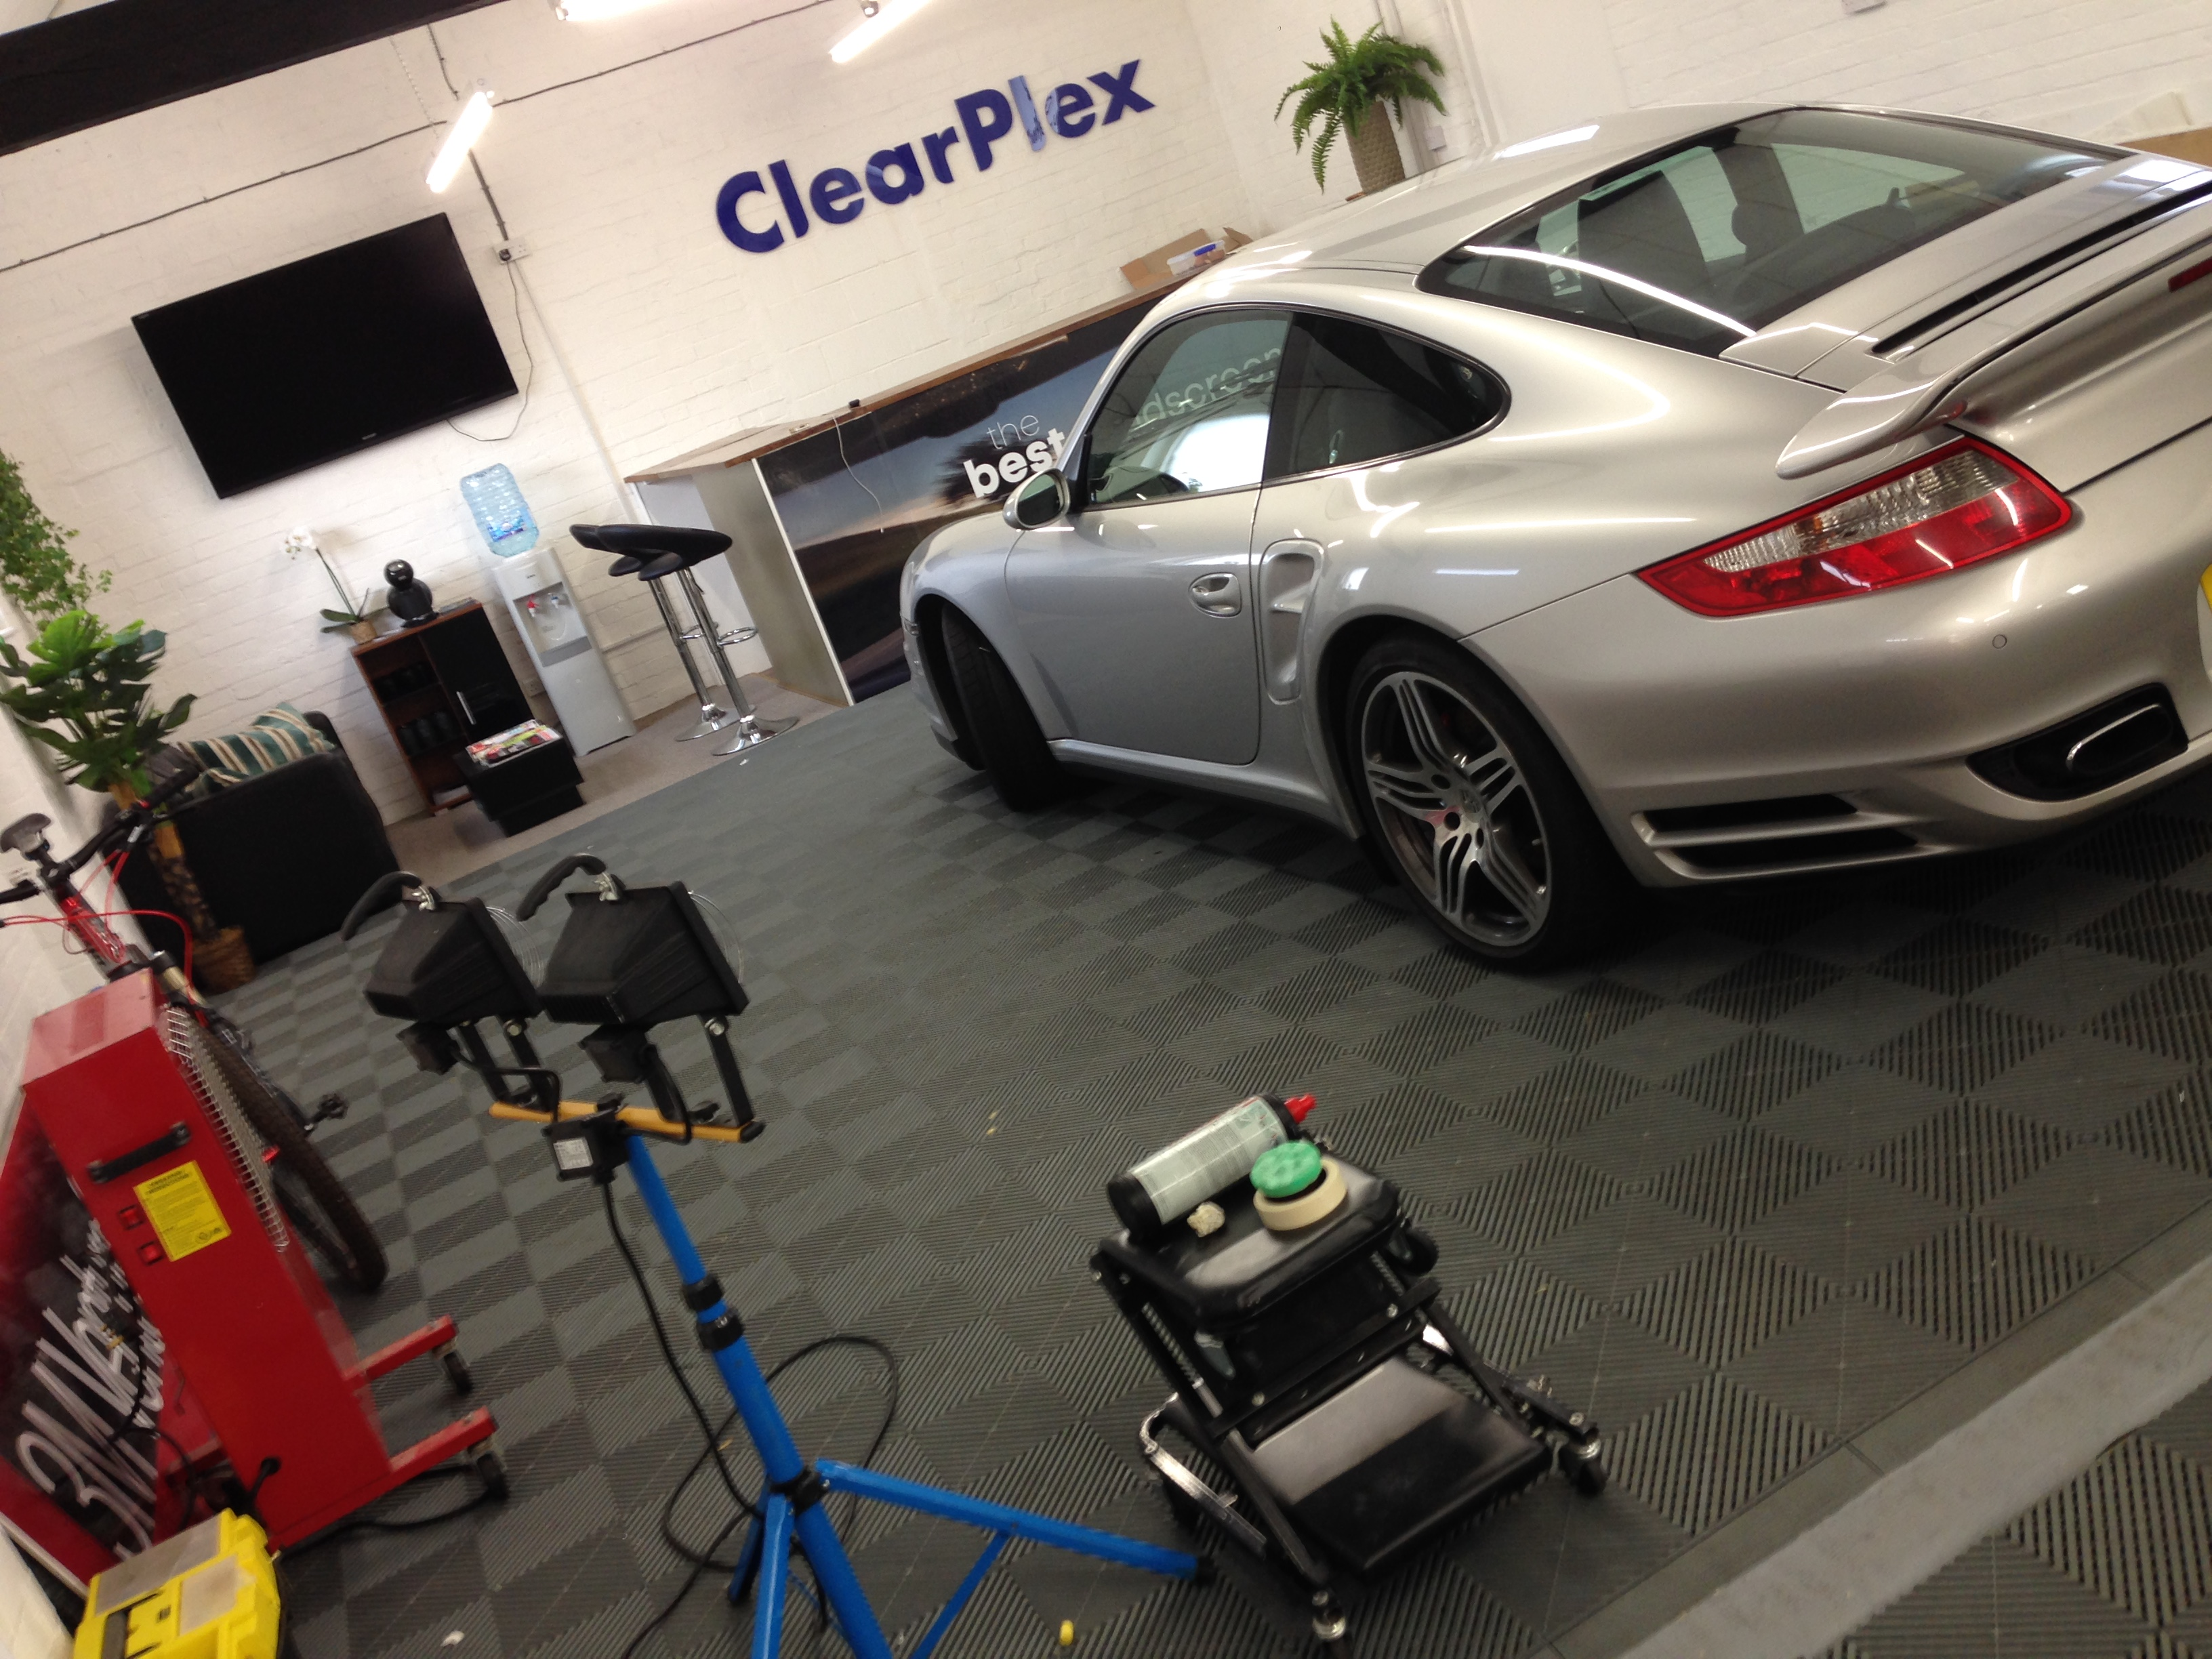 Car Detailing Workshop & Courses - How to detail your car?